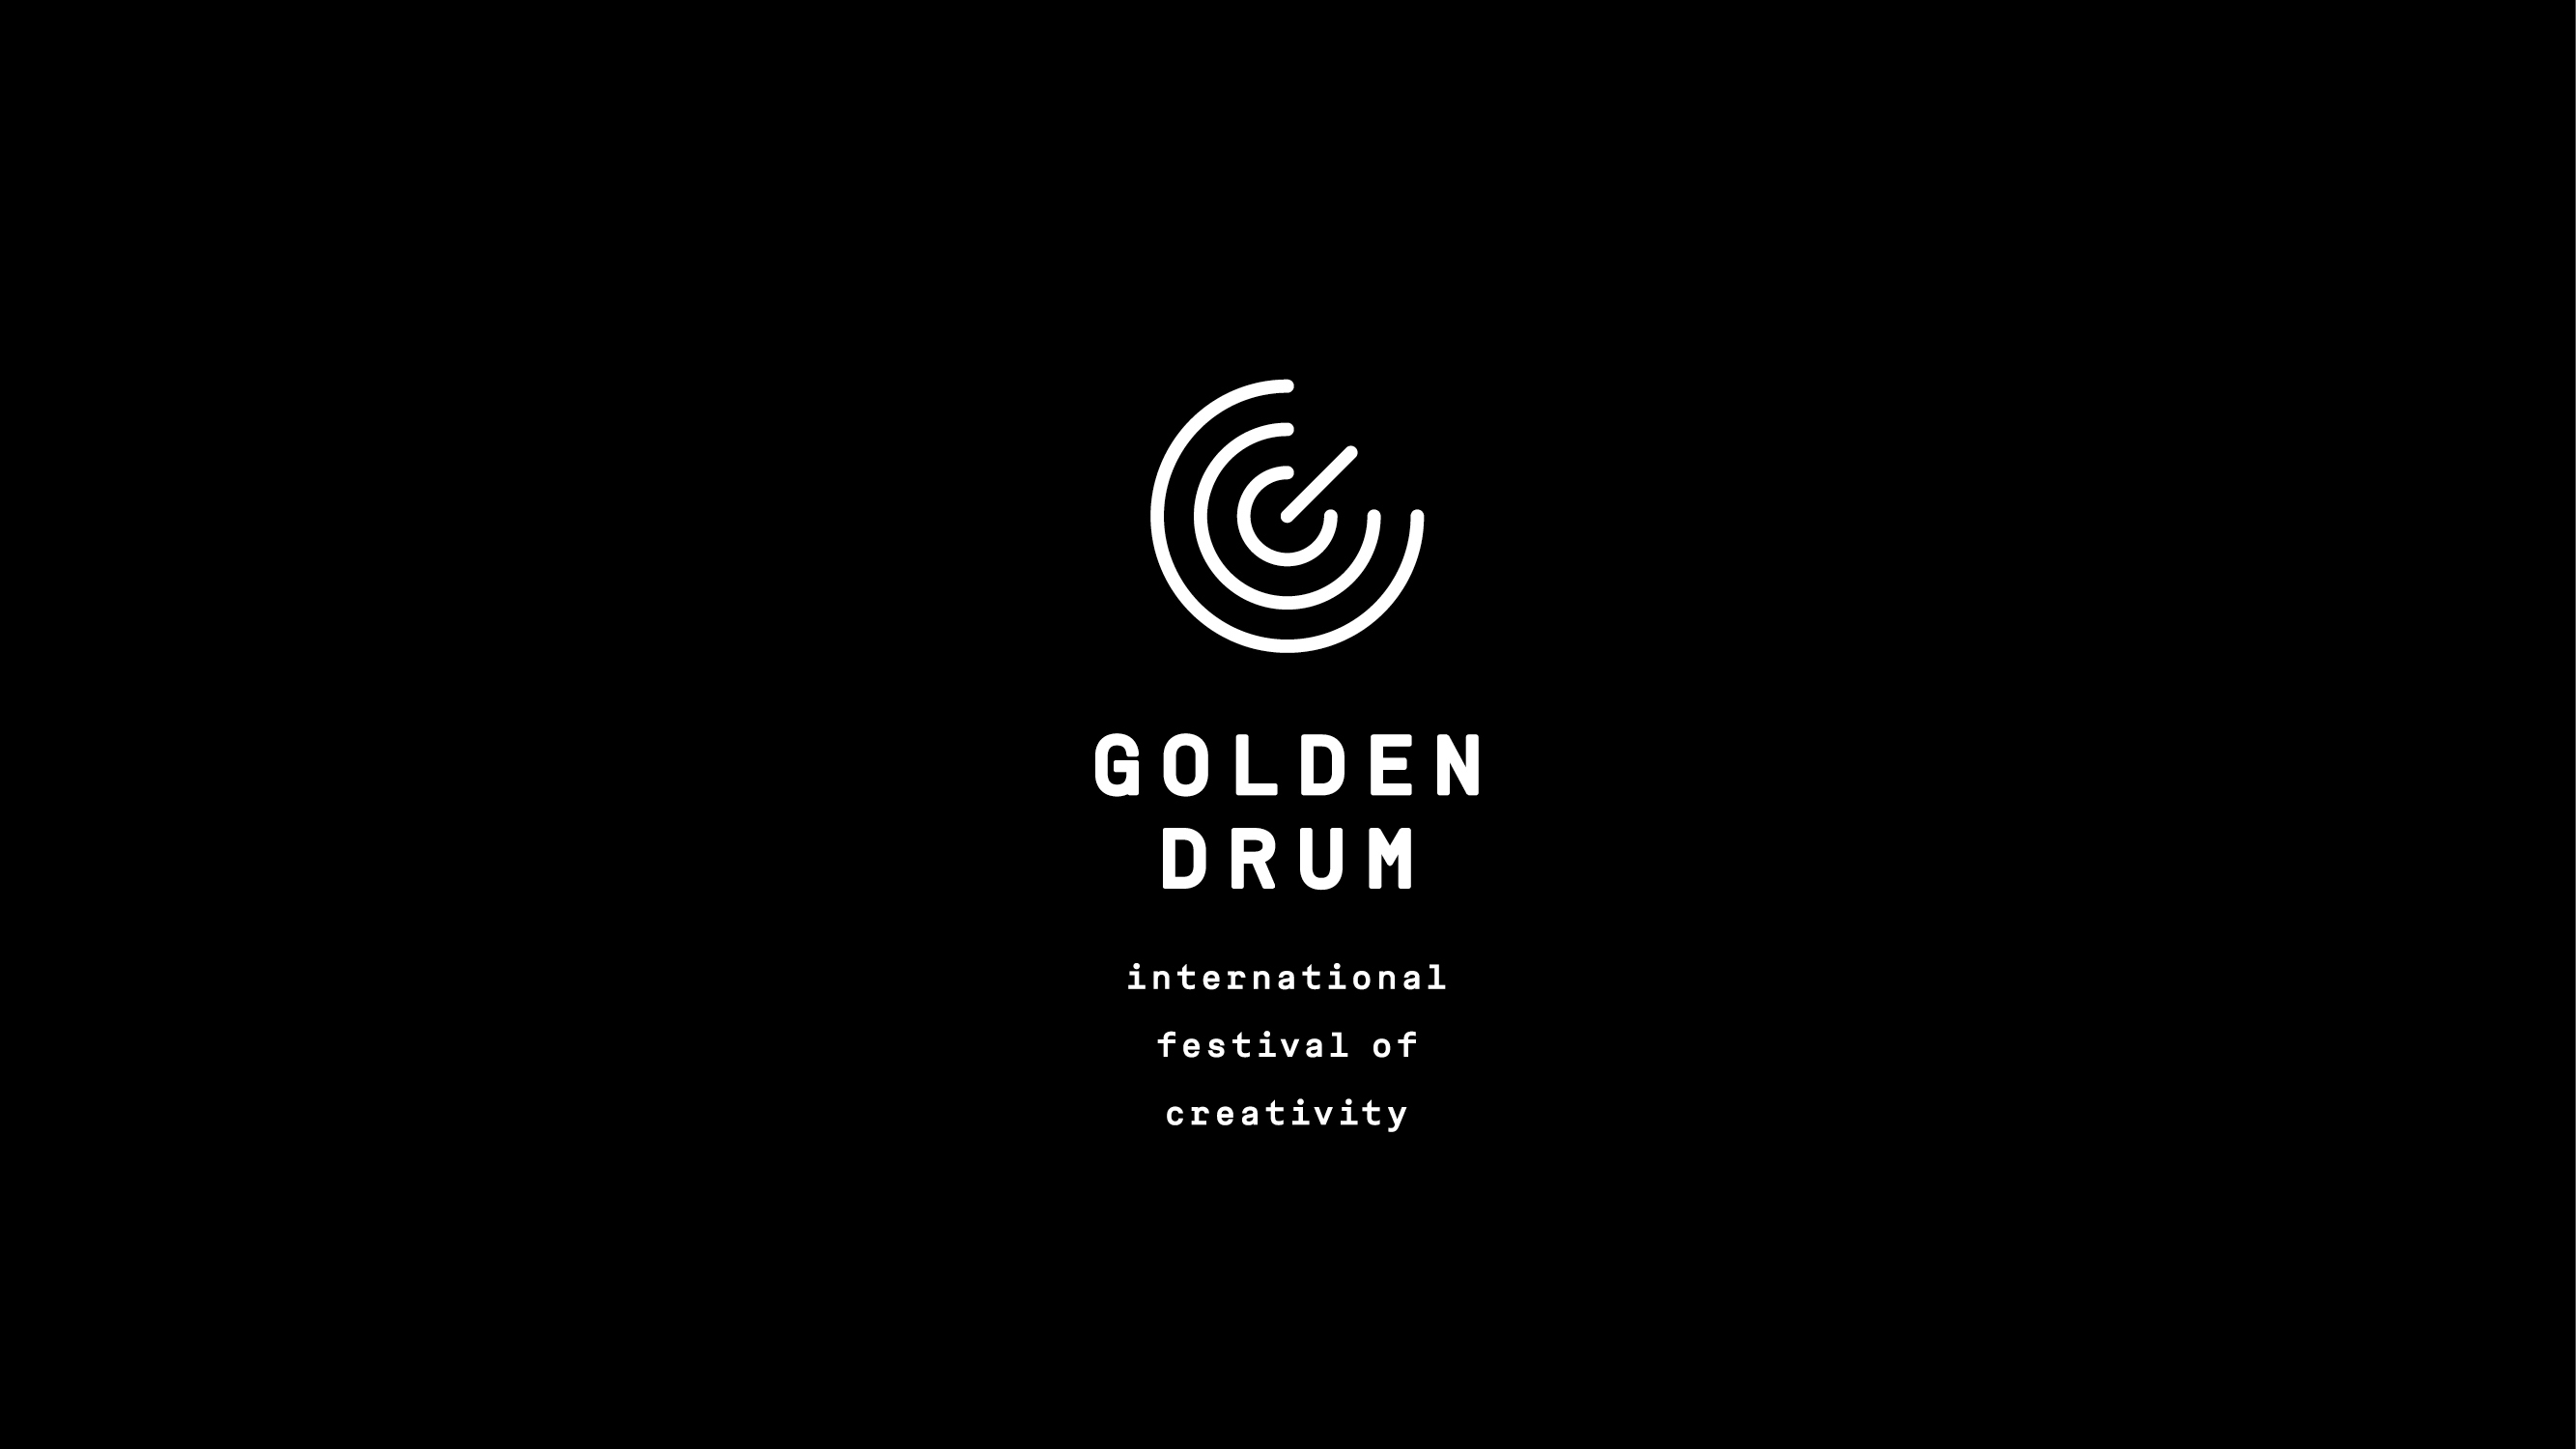 Golden Drum - Nova podoba